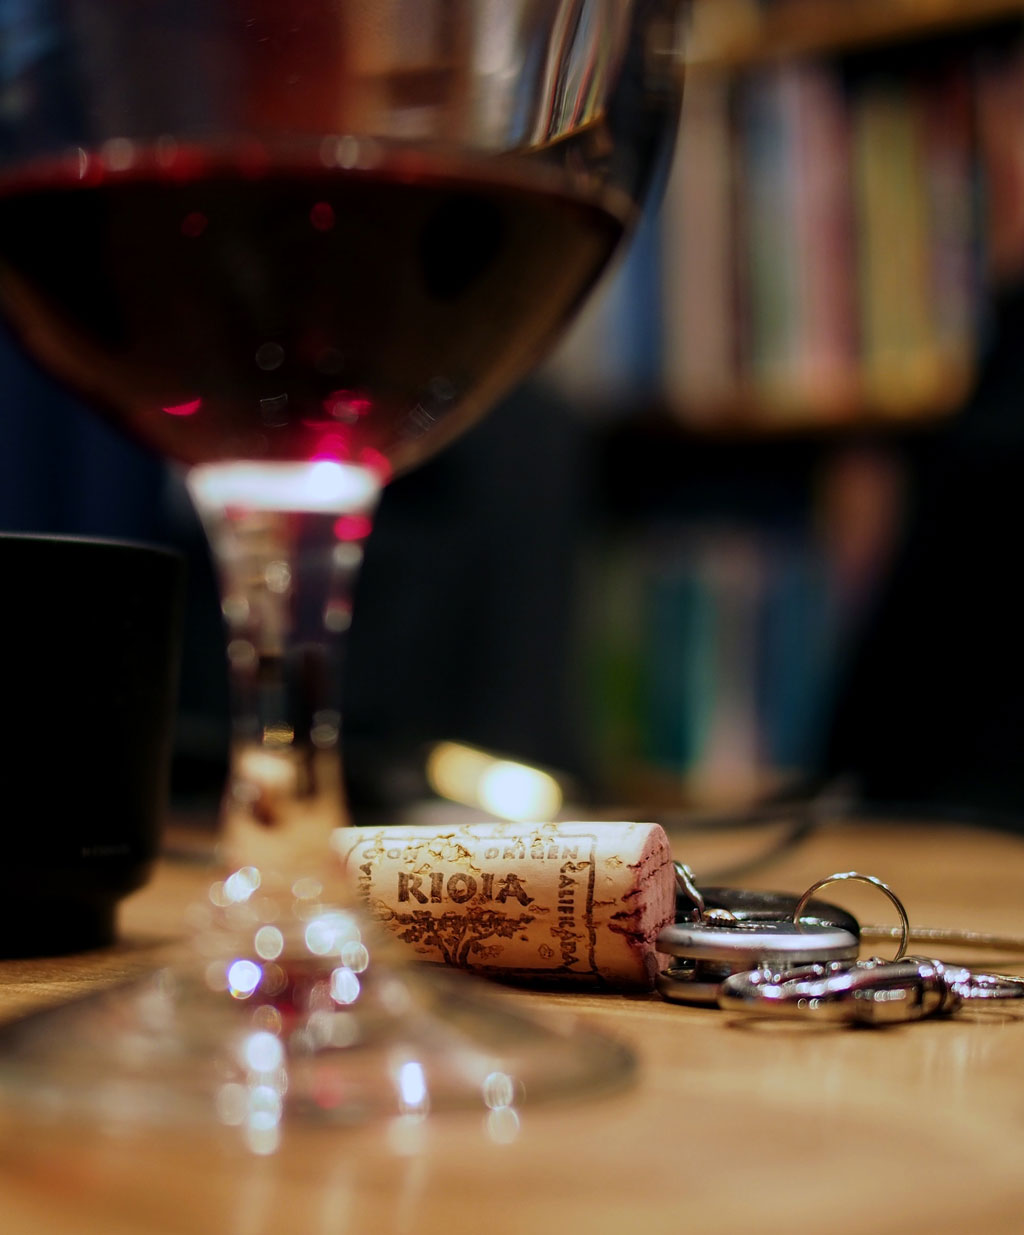 Glass of red wine in front of a cork and keys laying on a table